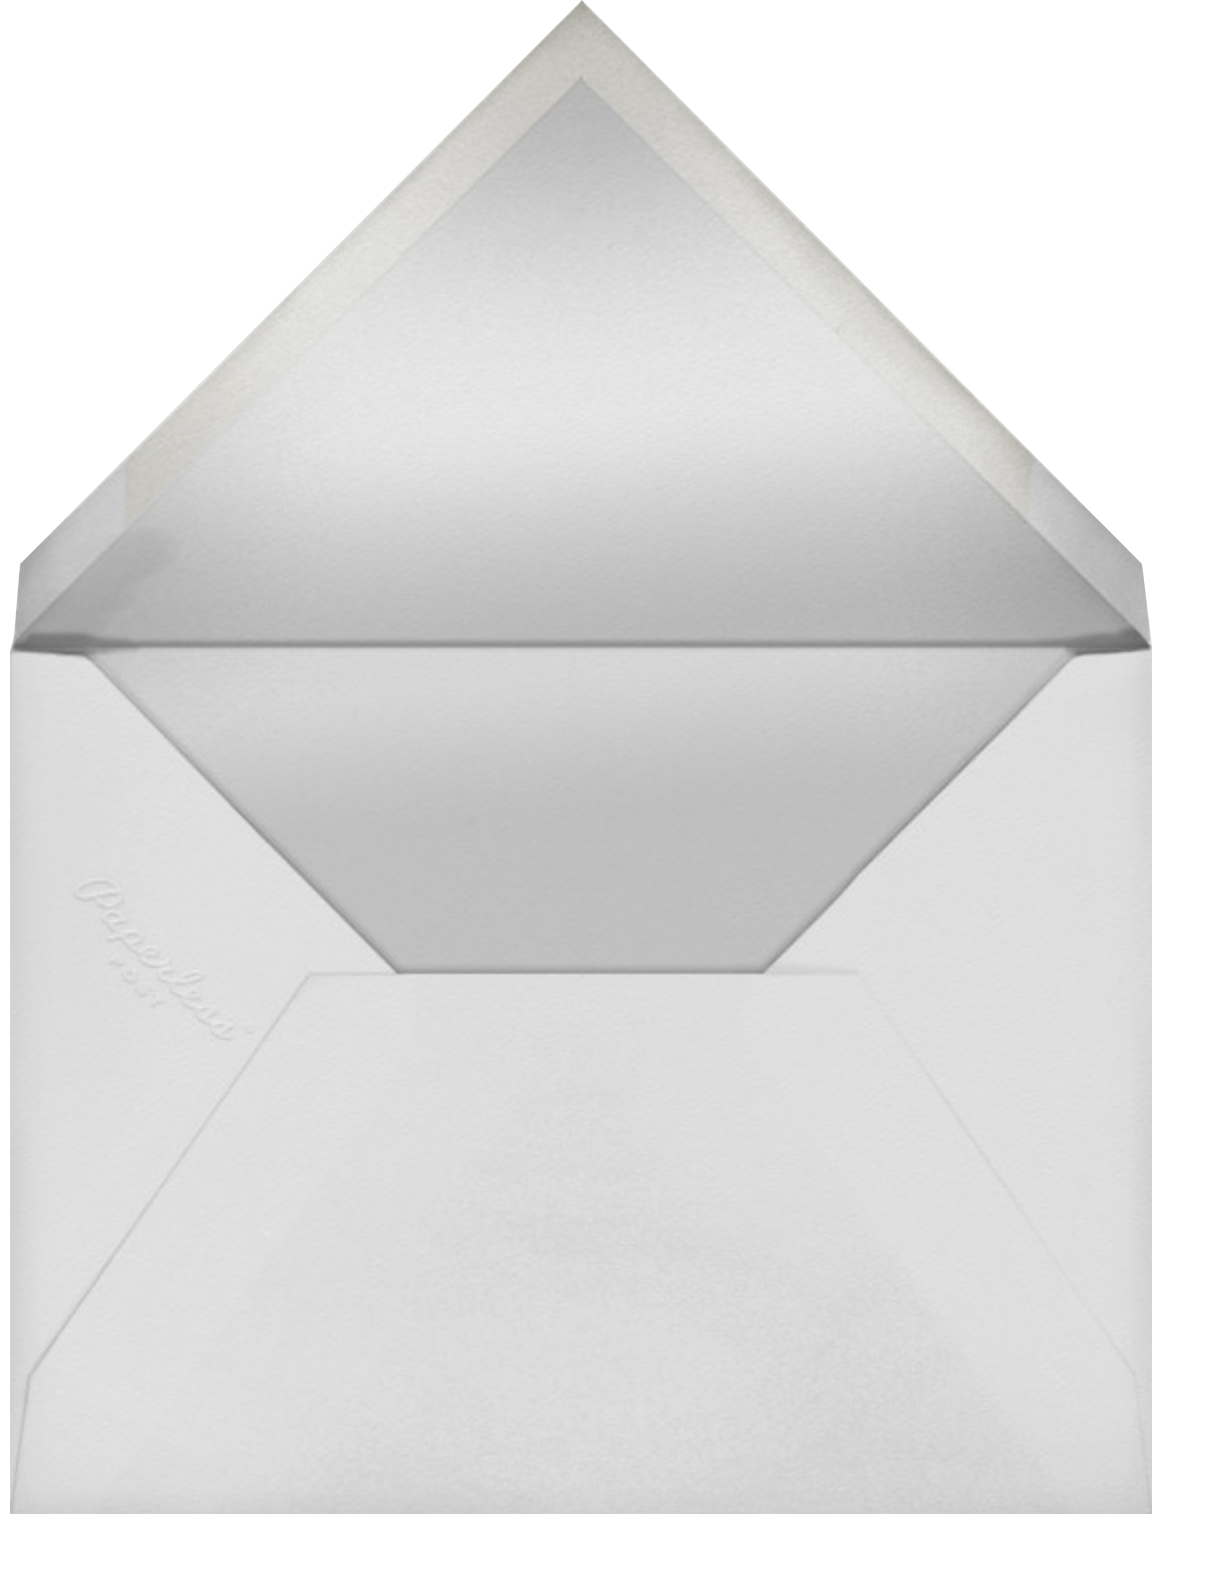 Da-aaad - Paperless Post - Father's Day - envelope back